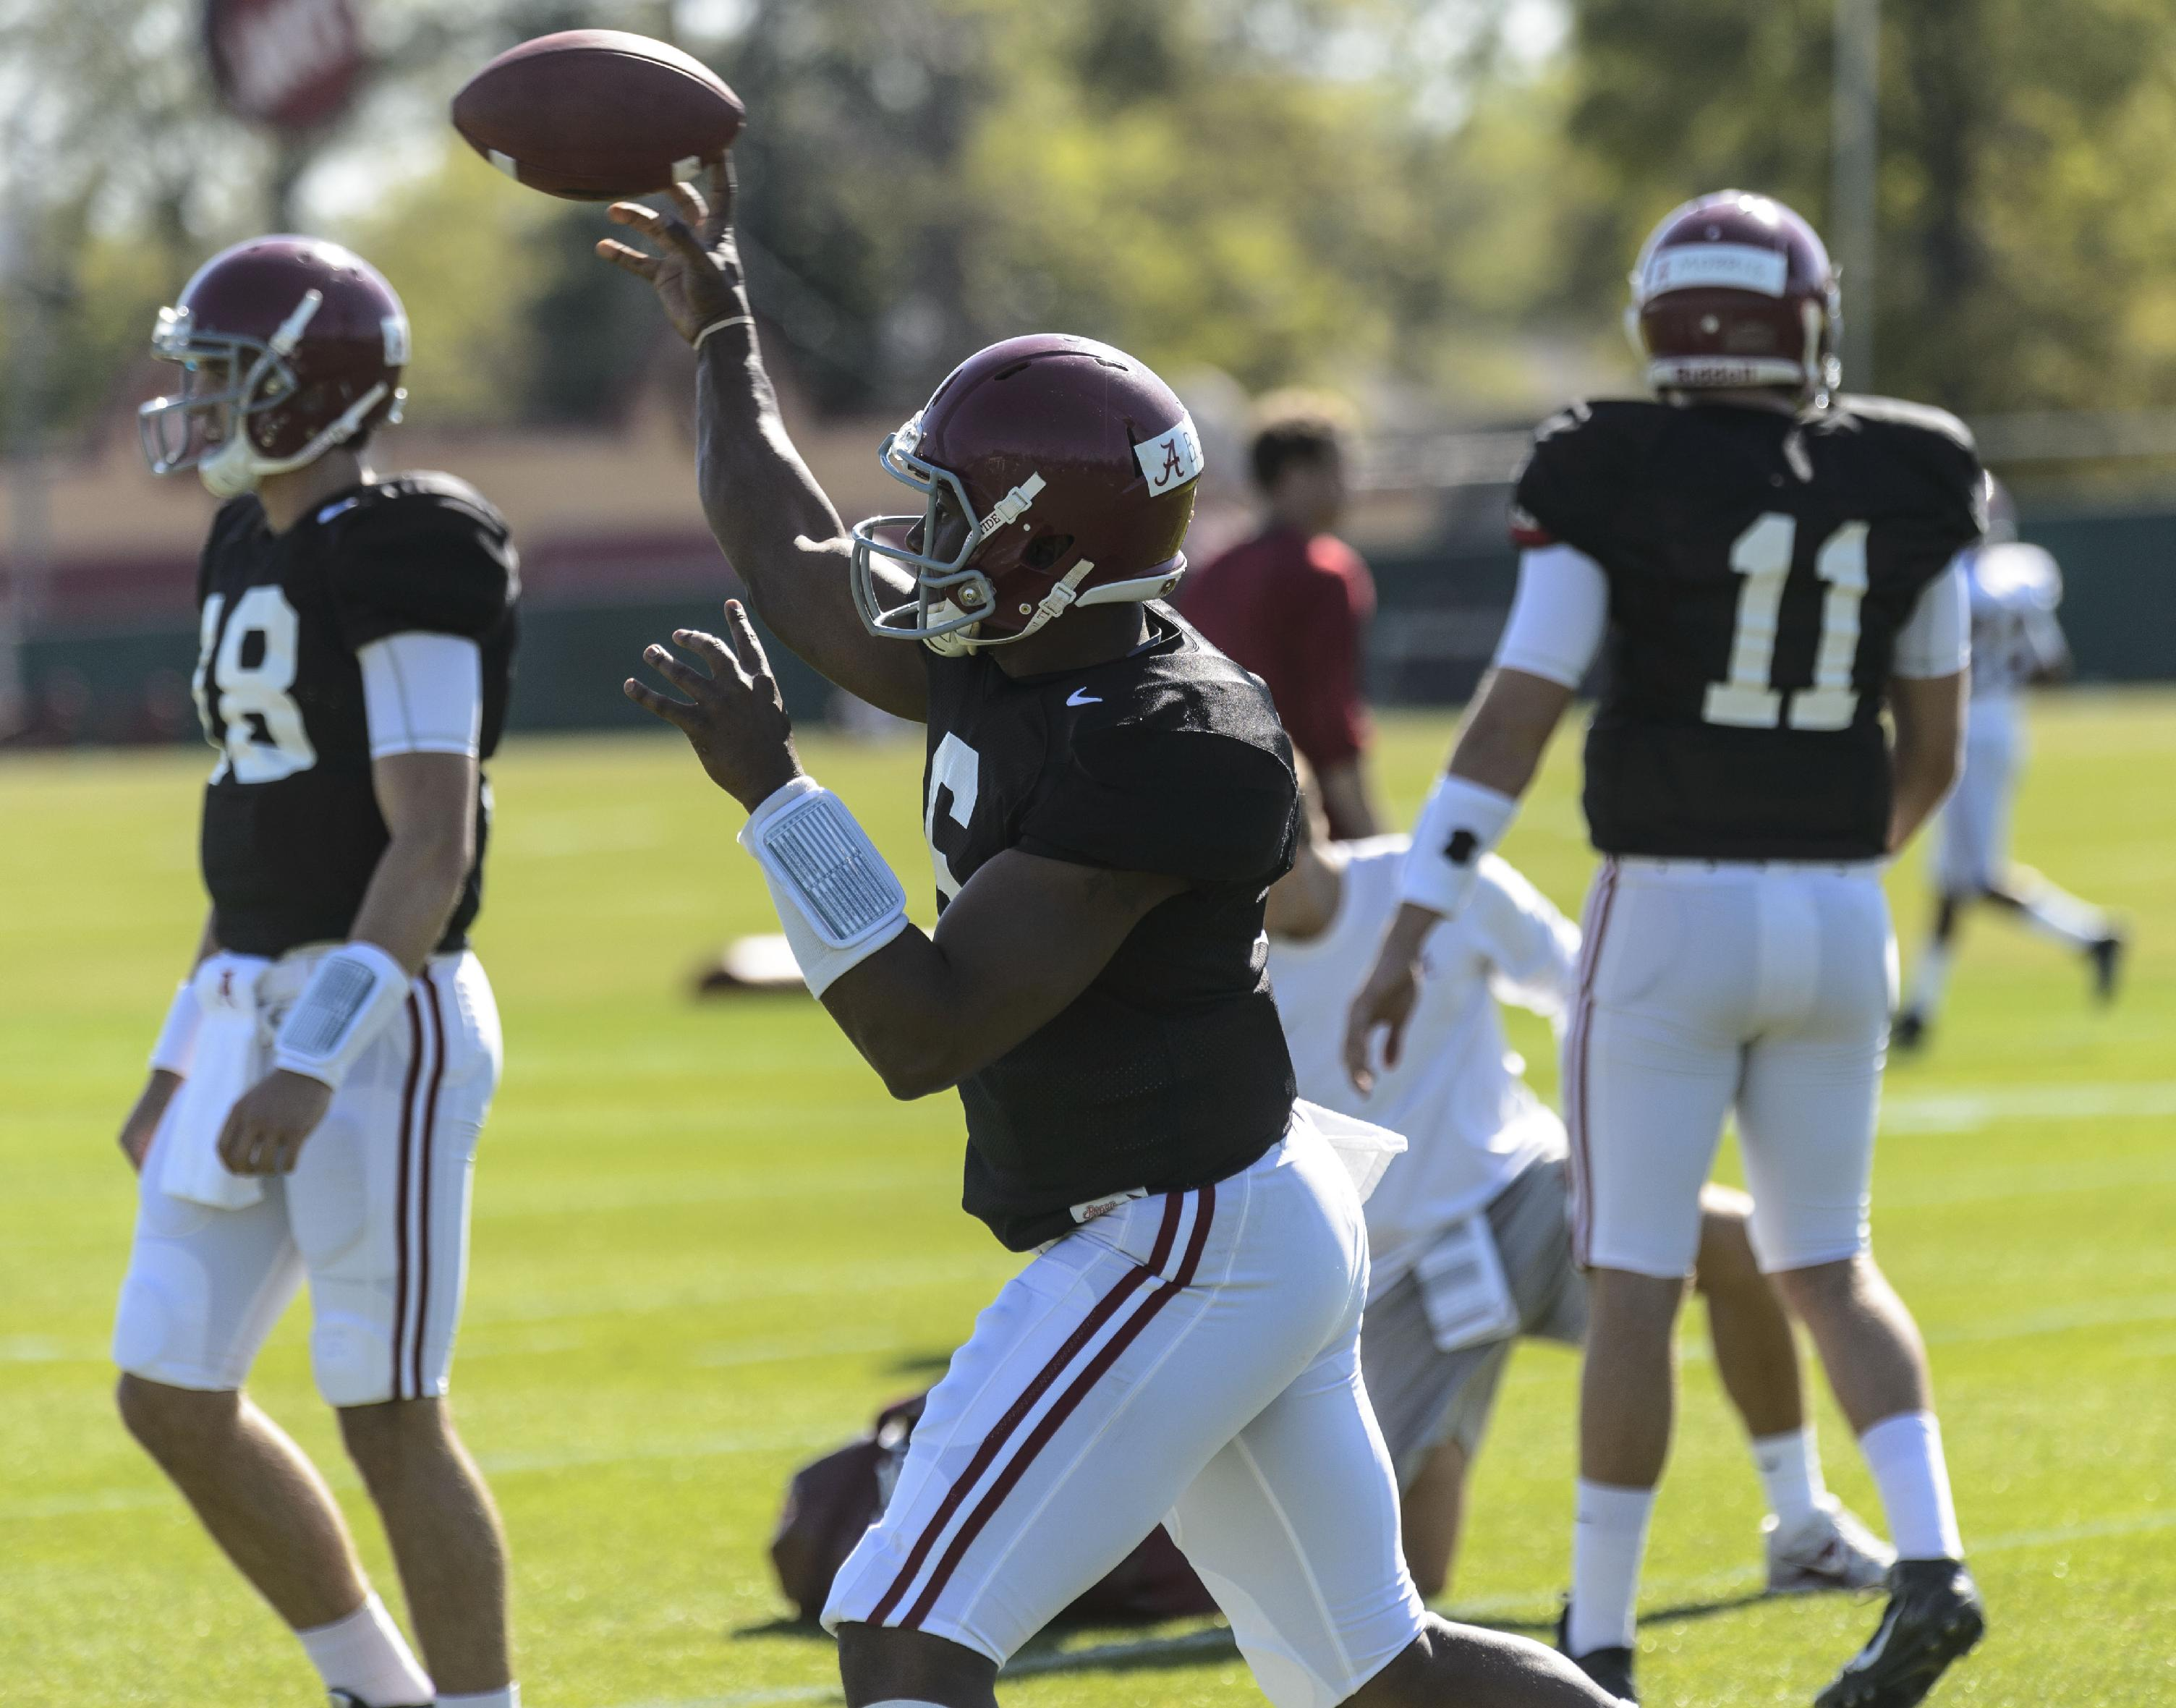 Alabama quarterback Blake Sims (6) passes in drills during NCAA college football spring football practice on Wednesday, April 9, 2014, at the Thomas-Drew Practice Facility in Tuscaloosa, Ala